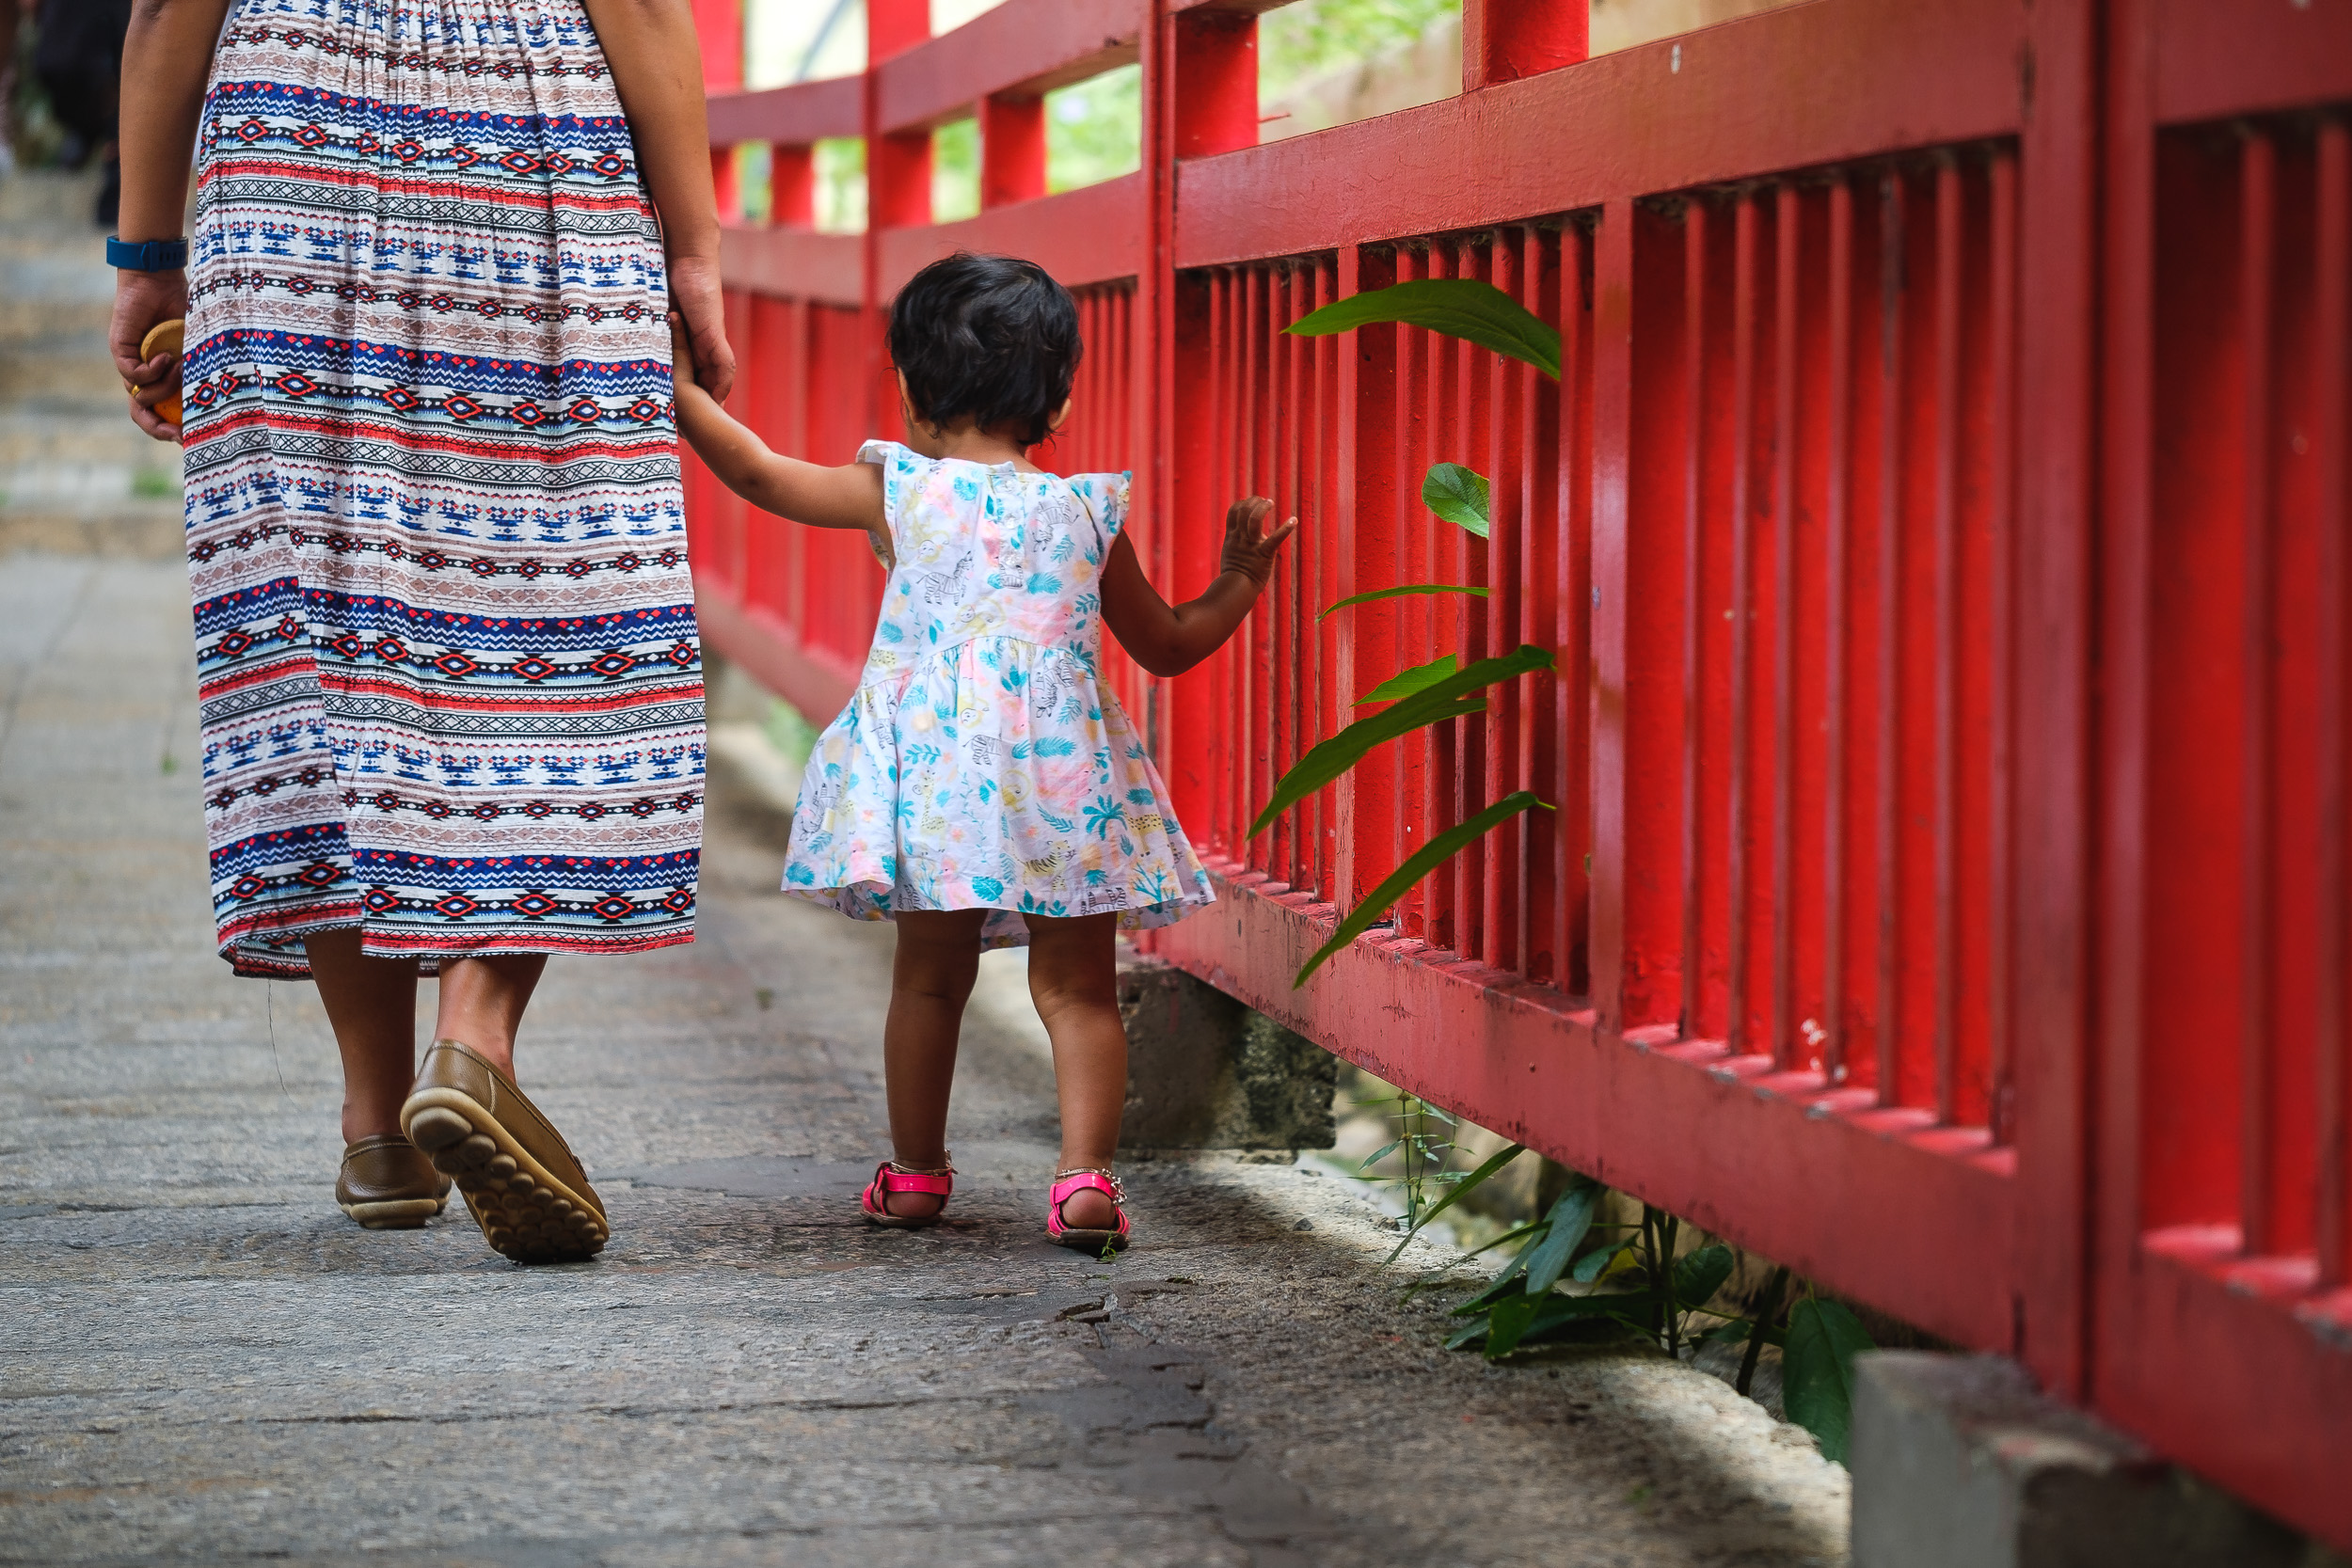 Child walking holding the hand of the mother in Kek lok si temple in Penang - Malaysia  Fujifilm X-T2 + Fujinon XF 80mm f/2.8 R LM WR OIS Macro  1/200sec, f/2.8, ISO 200